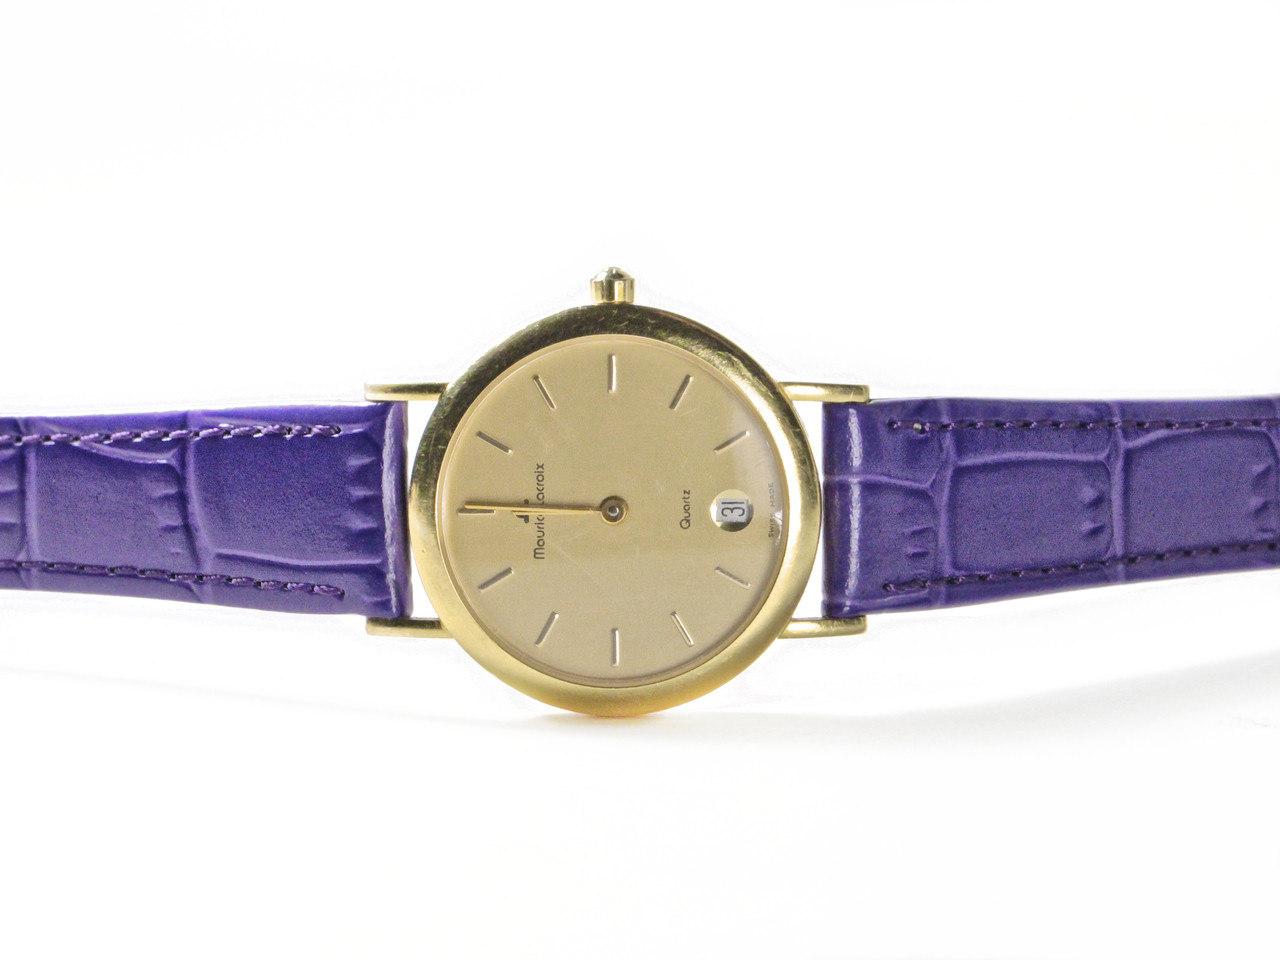 s jewellers crocodile watch gold ladies yellow quartz with glycine gray dial watches on strap jewellery champagne